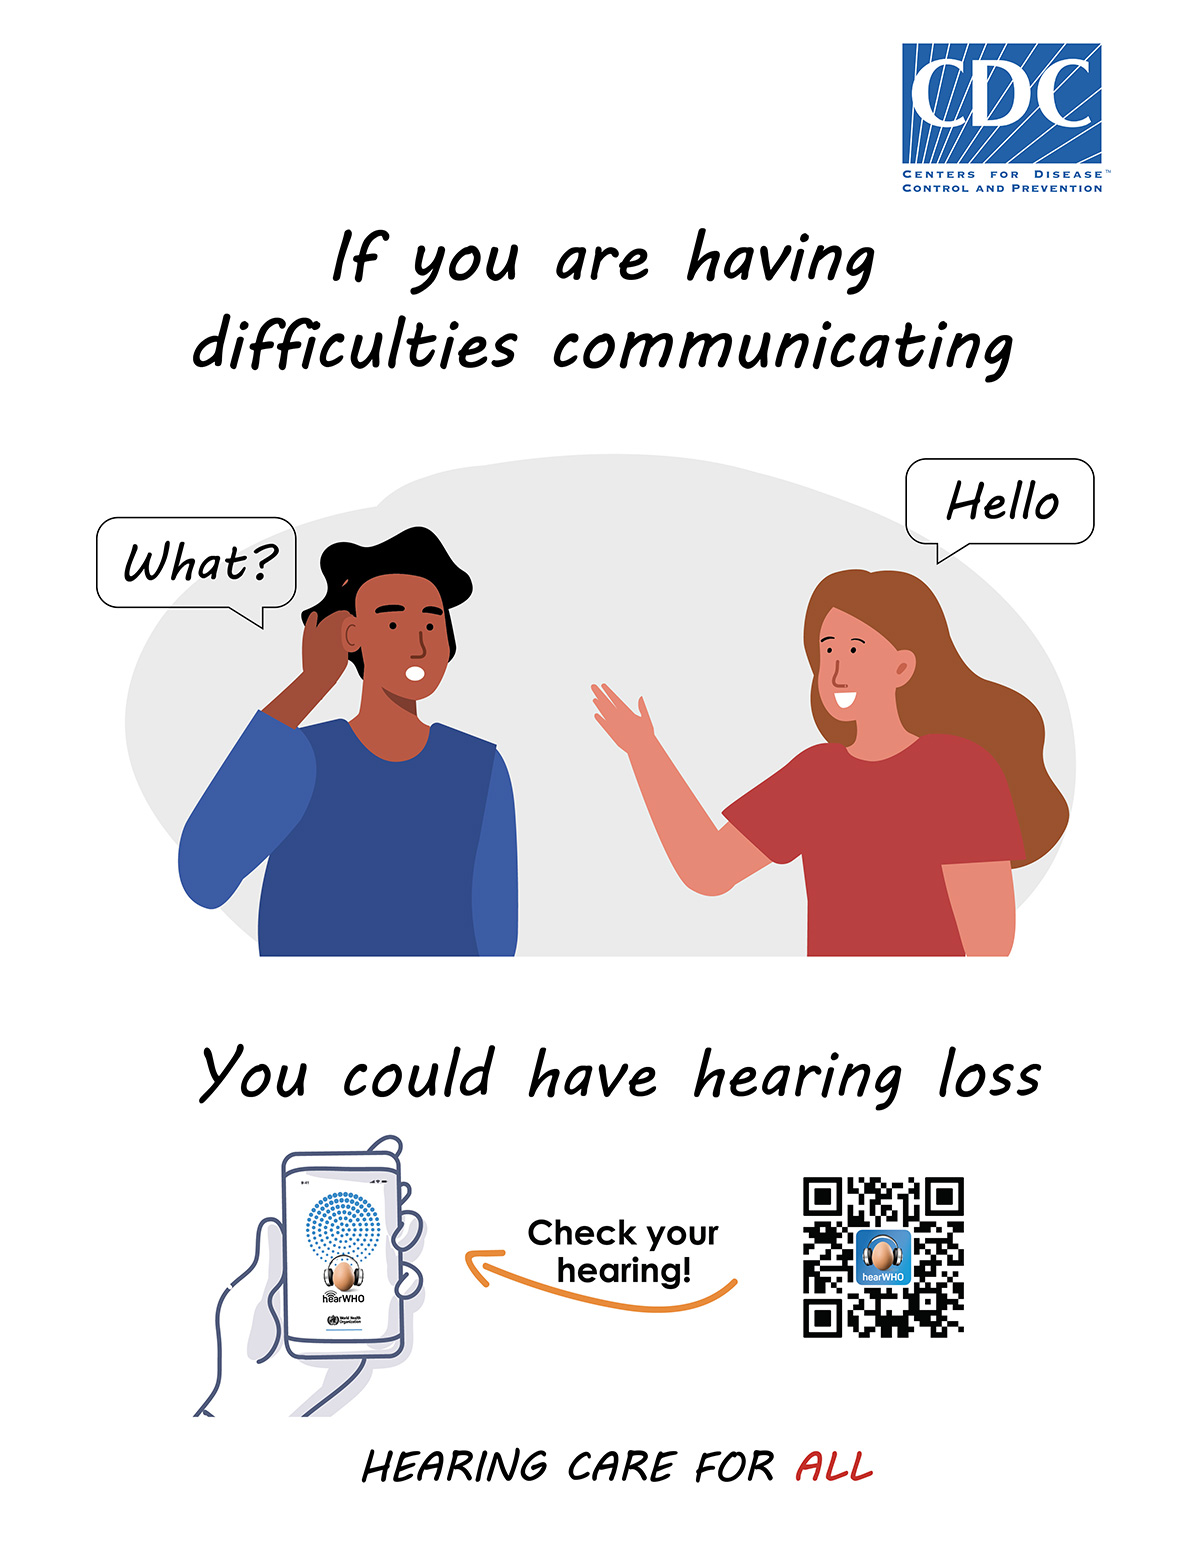 If you are having difficulties communicating, you could have hearing loss. Check your hearing!